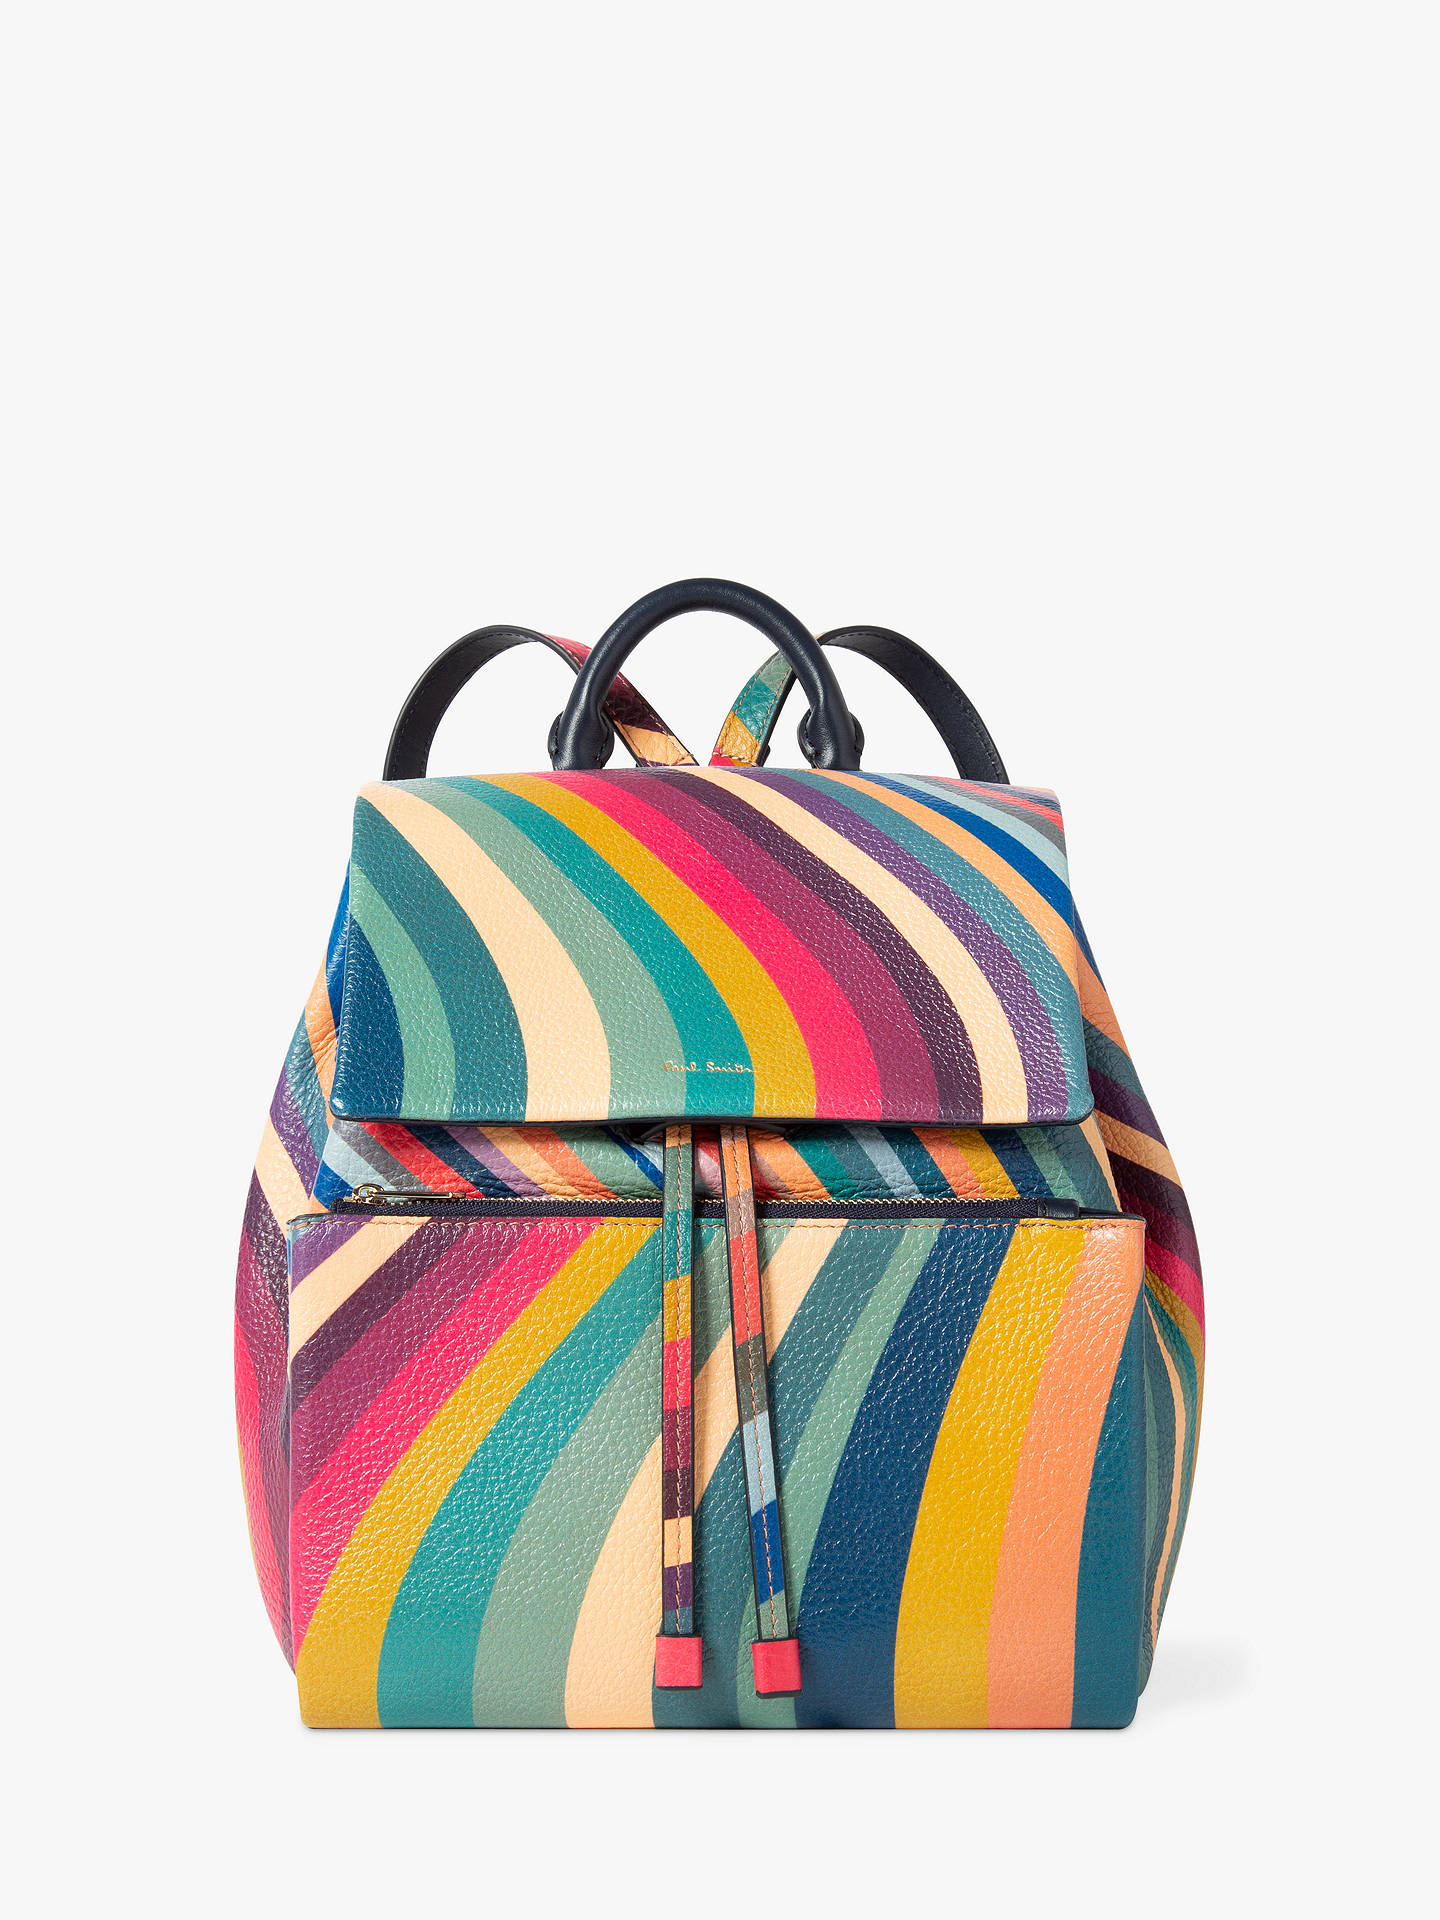 ce21f80d10 Buy Paul Smith Leather Flapover Backpack